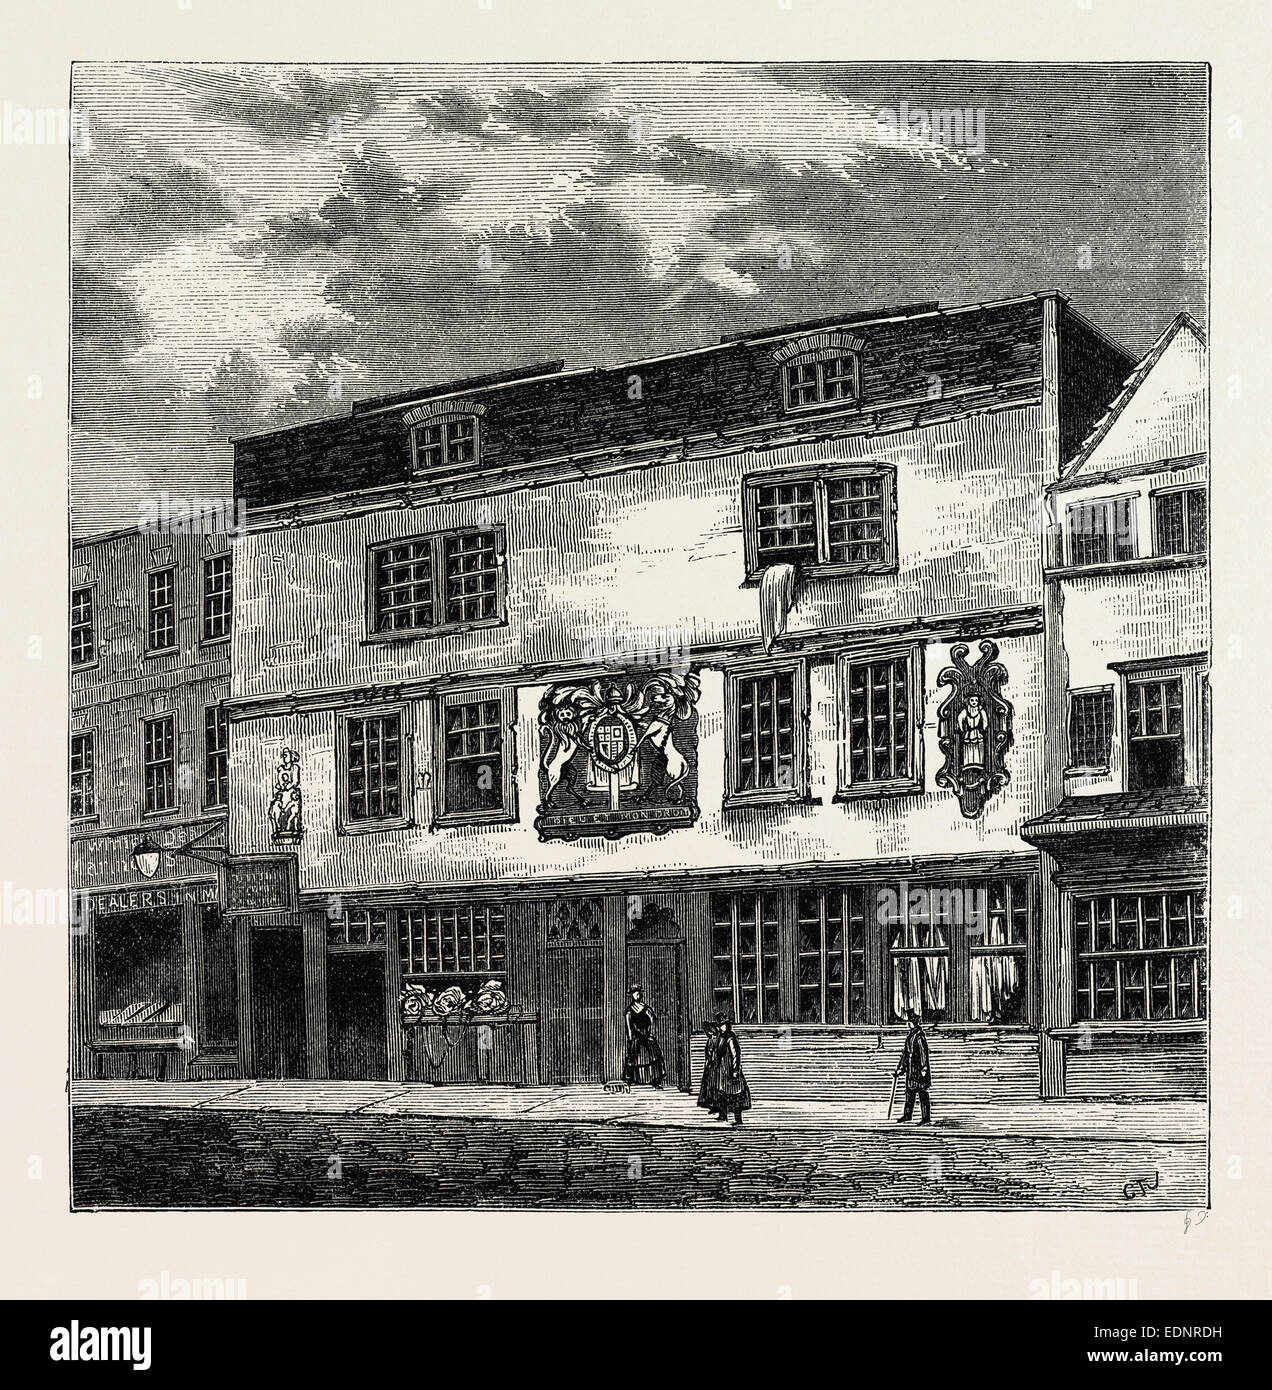 THE FORTUNE THEATRE, 1811, London, UK, 19th century engraving - Stock Image